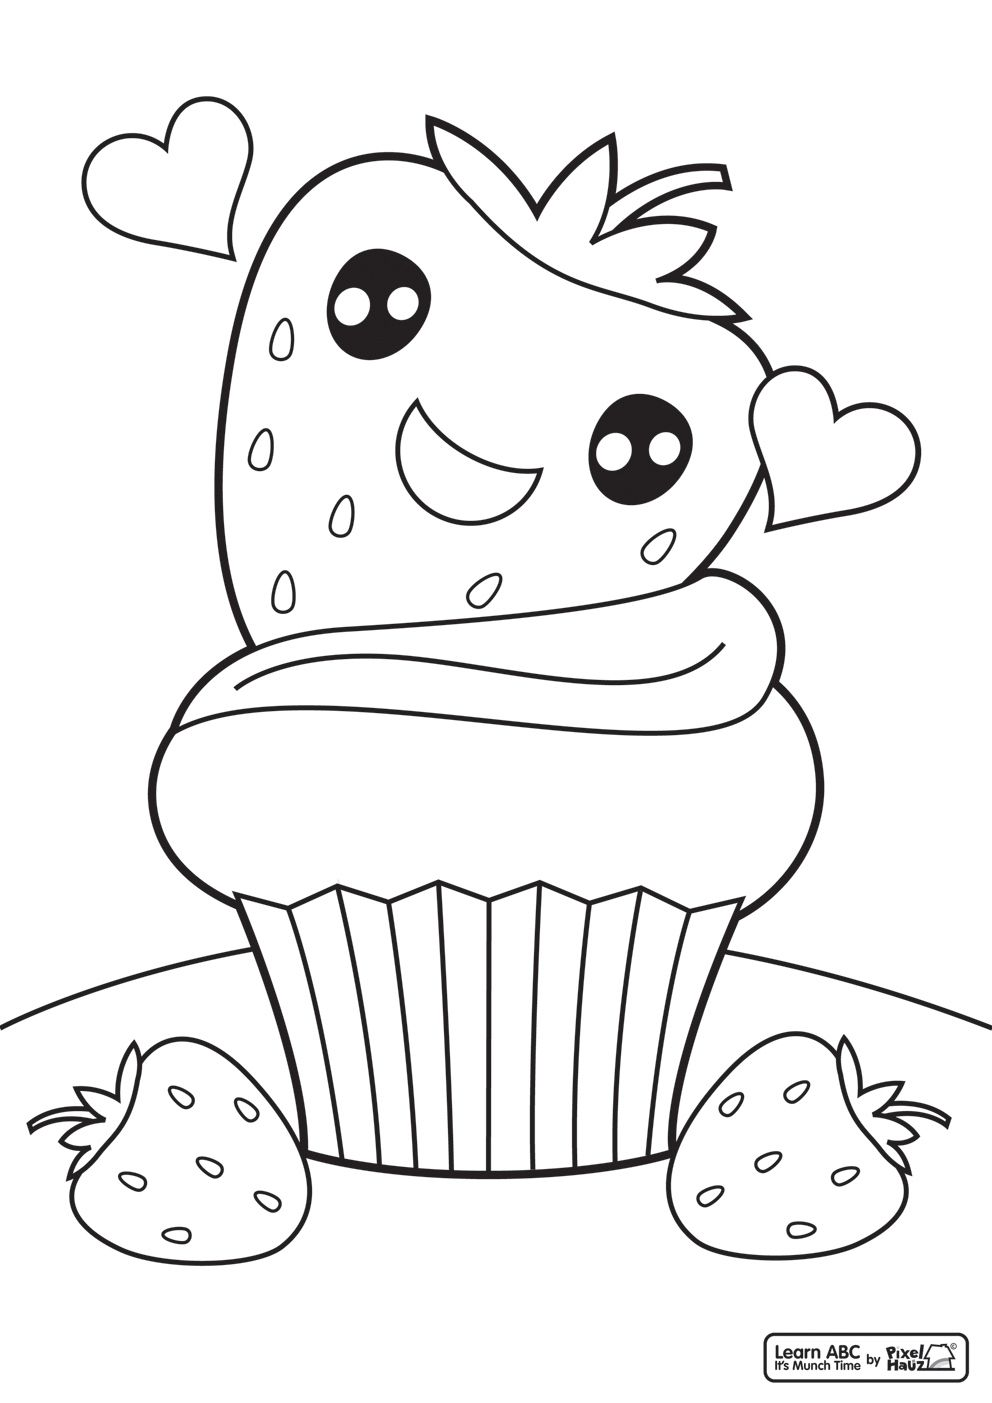 coloring pages cupcakes - cute cupcake coloring pages coloring home